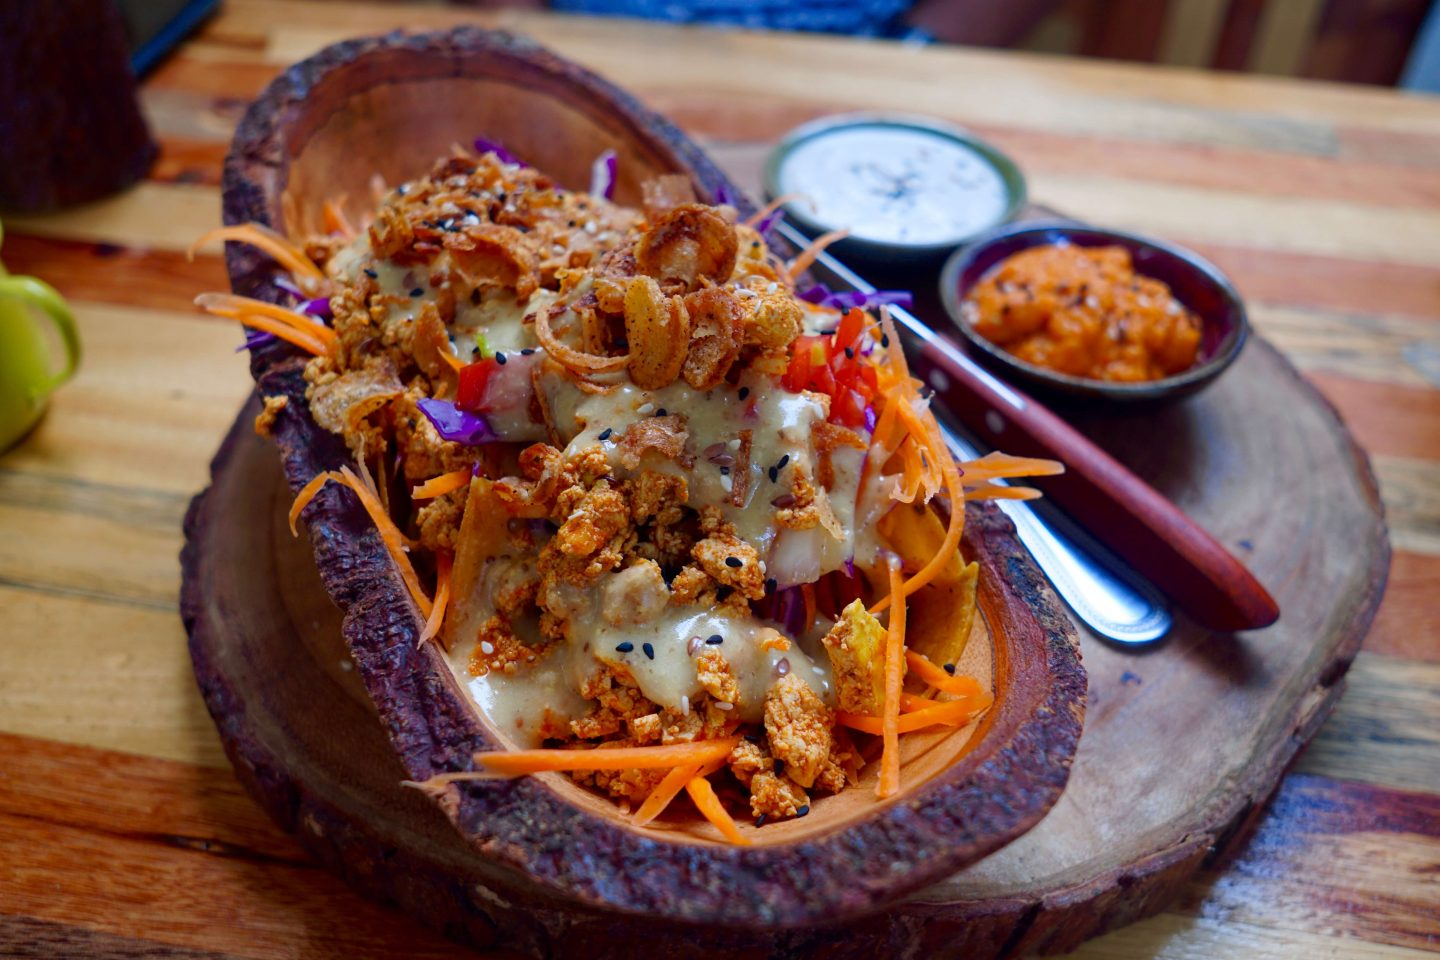 Top 3 Vegan Restaurants In Chiang Mai